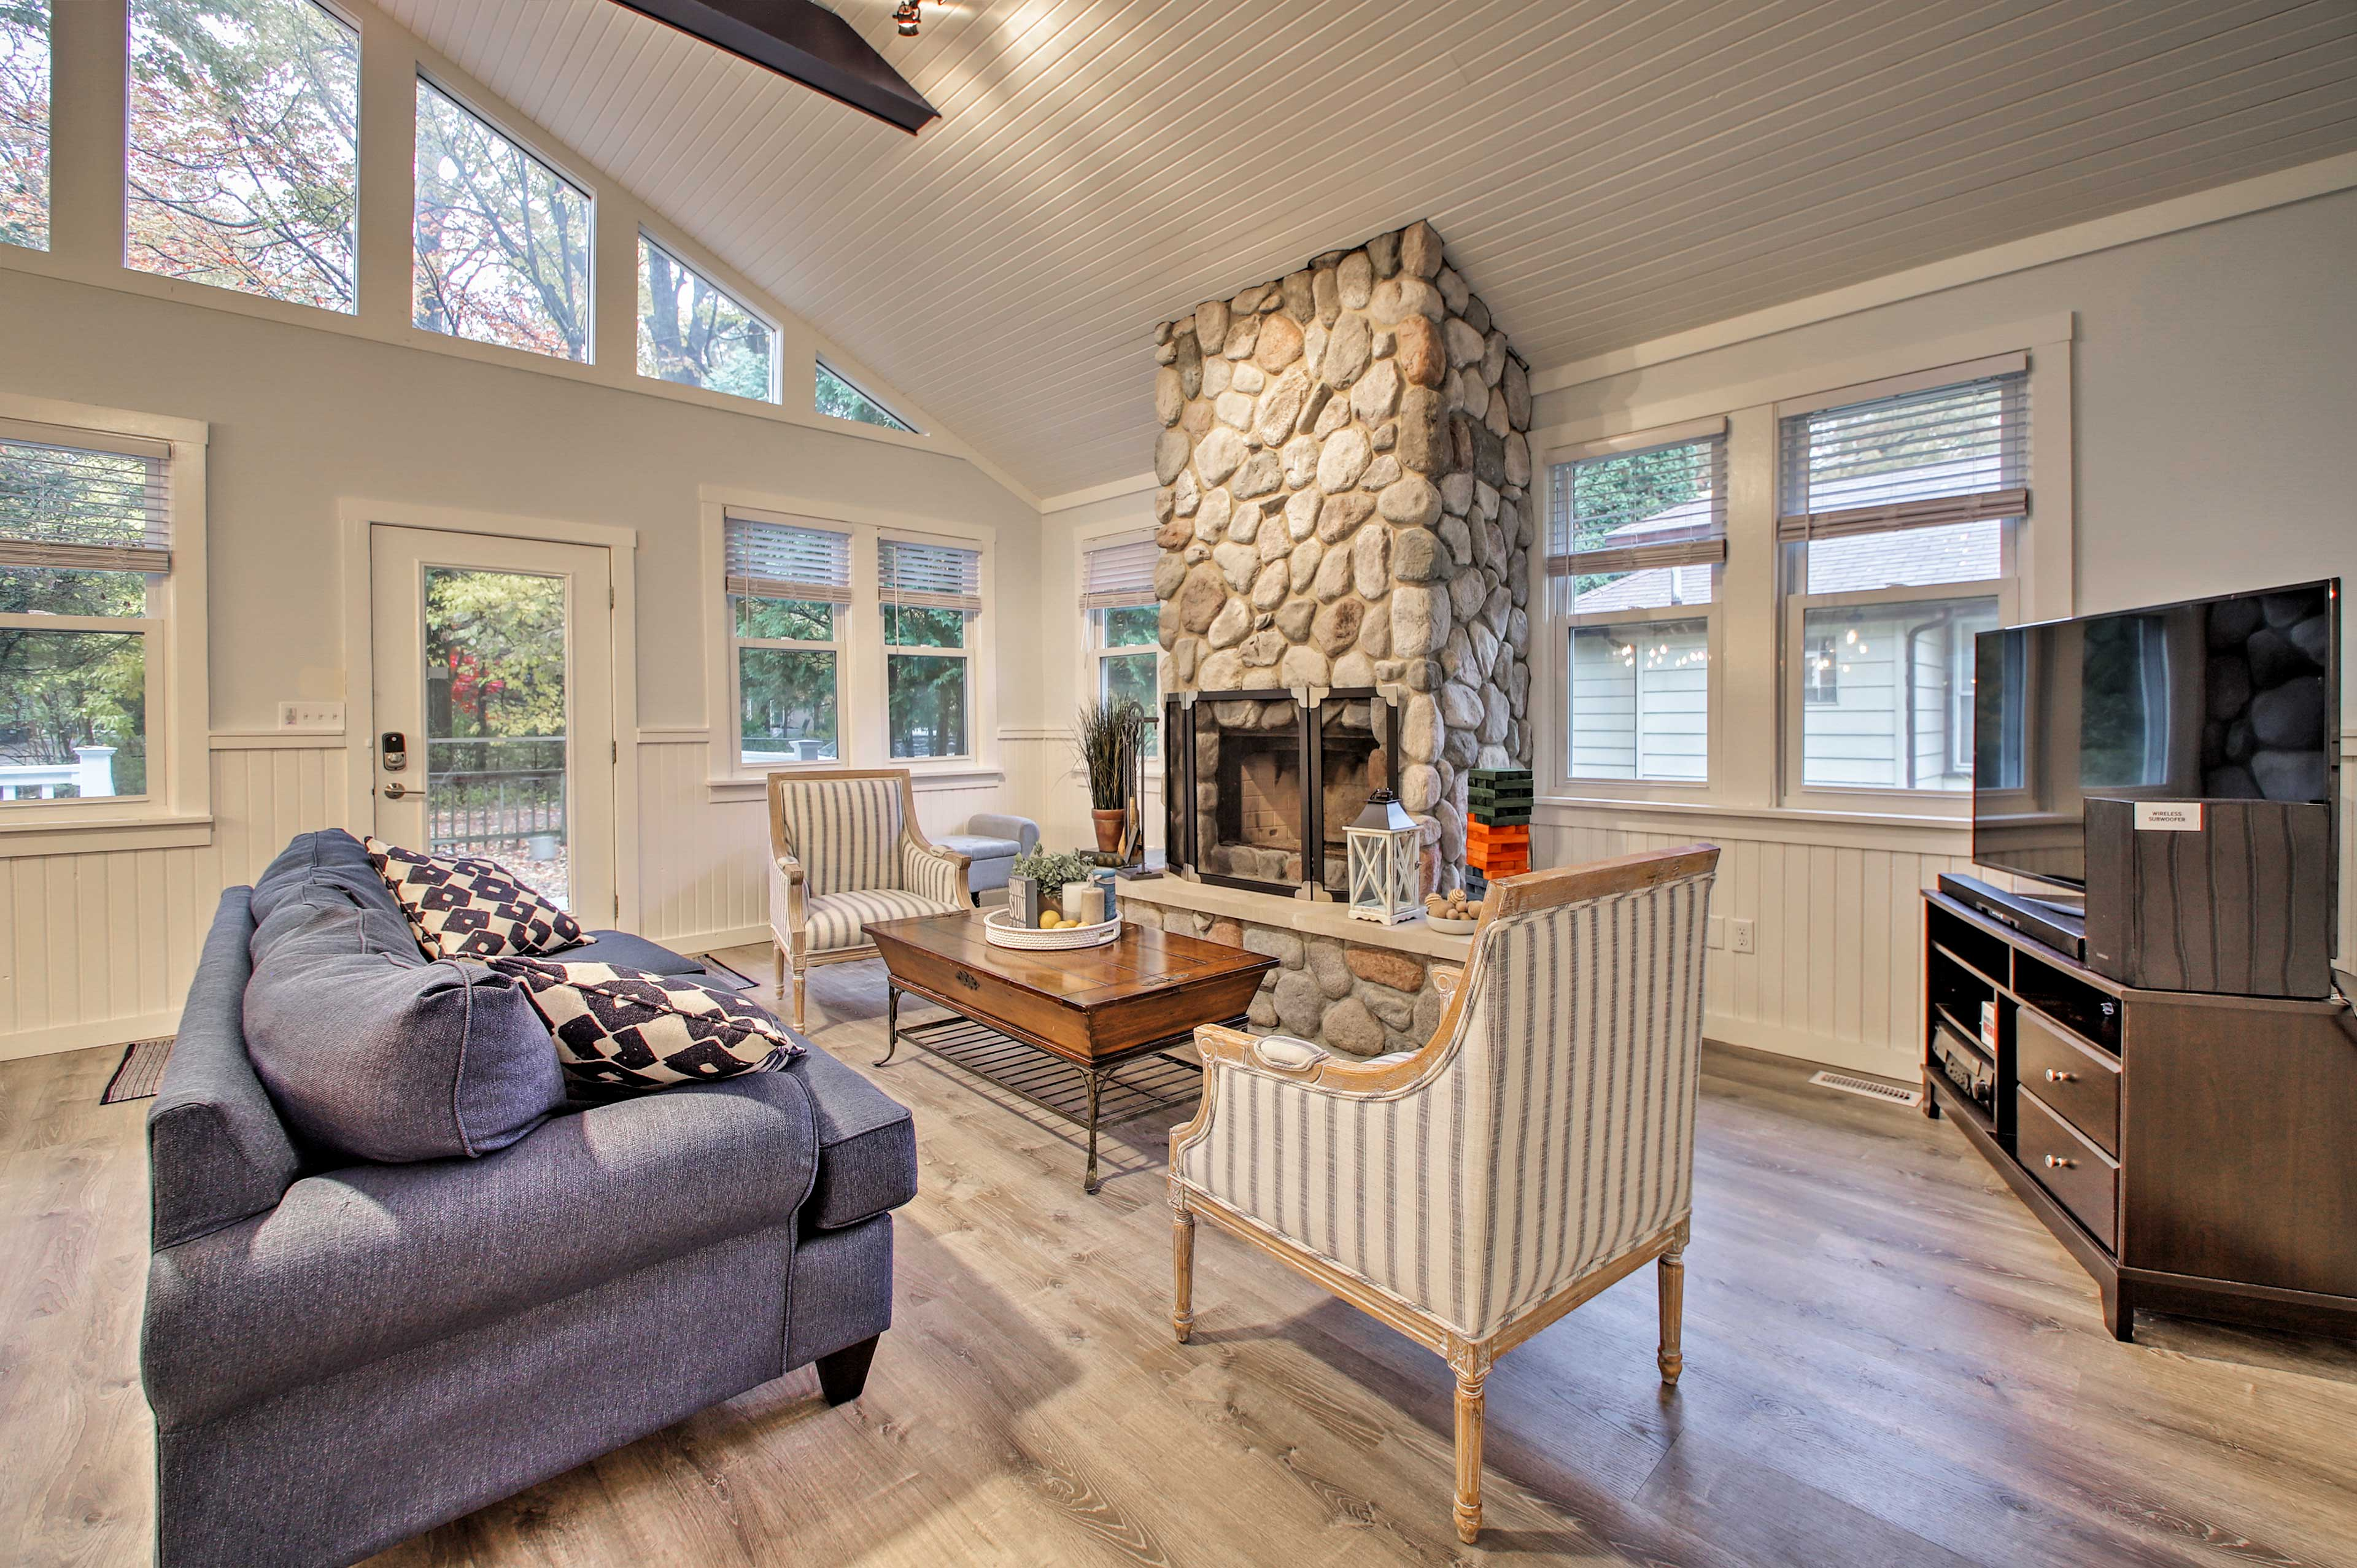 A large stone fireplace and vaulted ceilings highlight the living area.